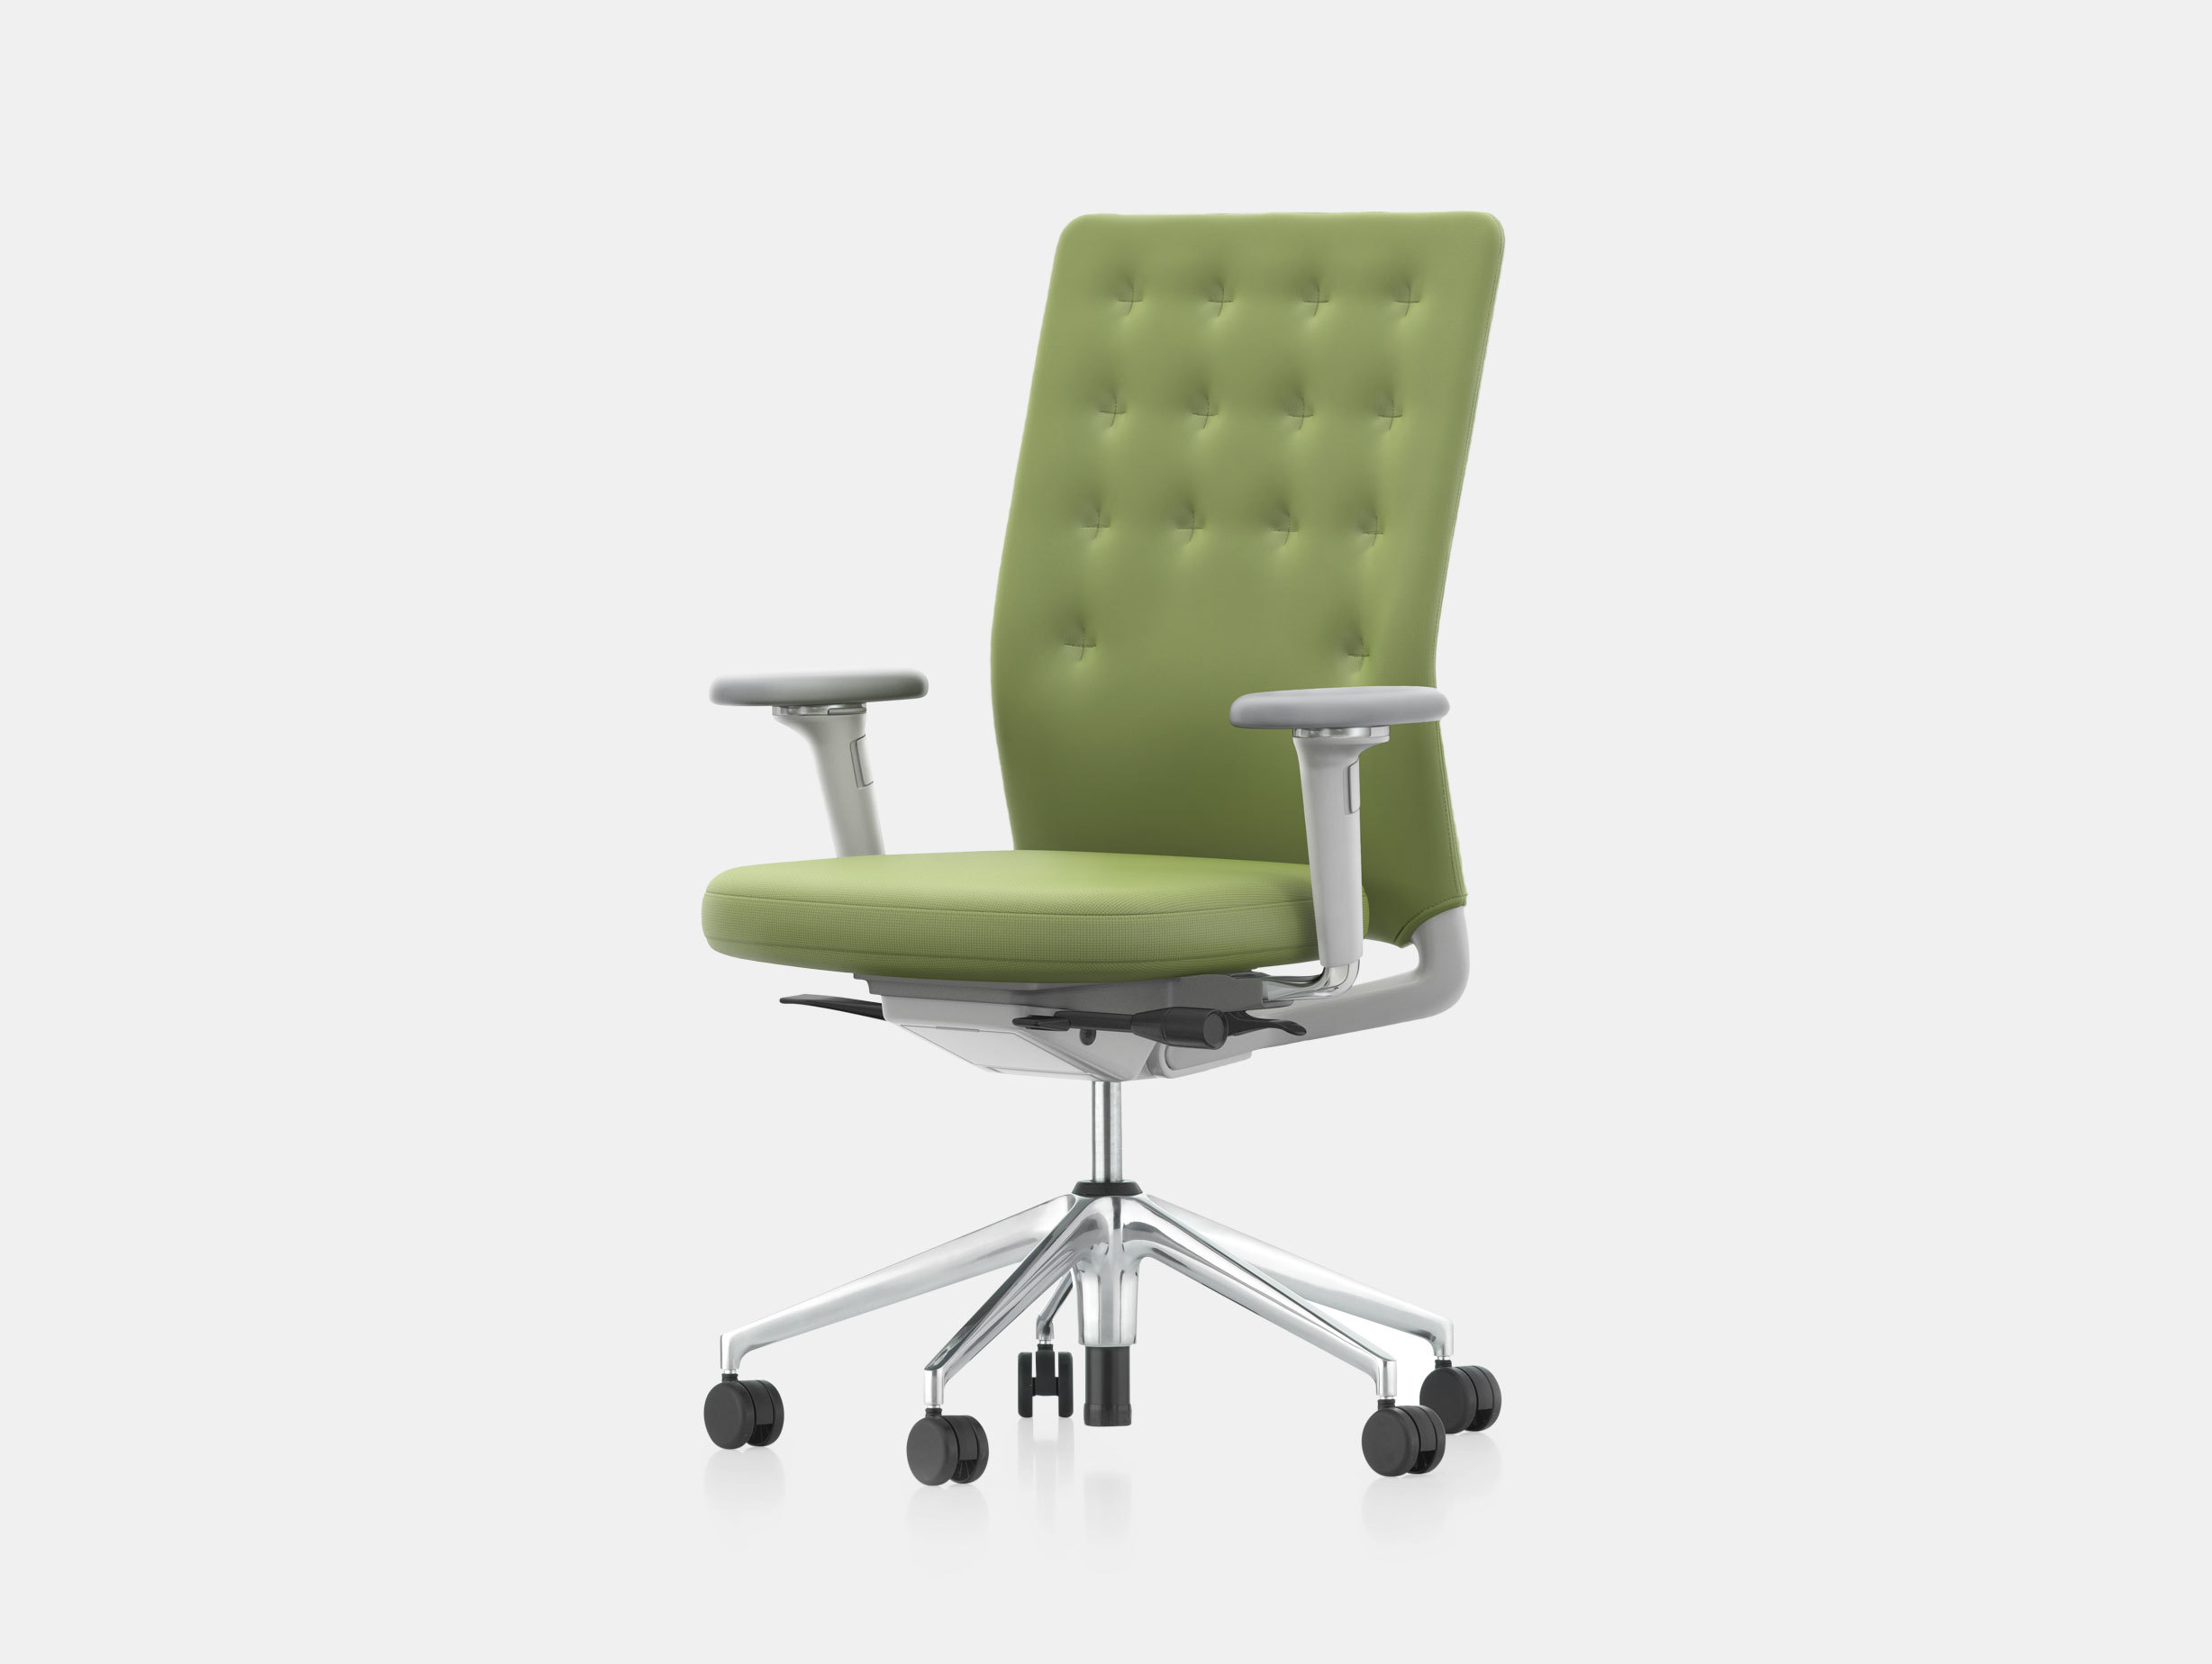 vitra ergonomic chair serena and lily hanging id trim office viaduct green antonio citterio